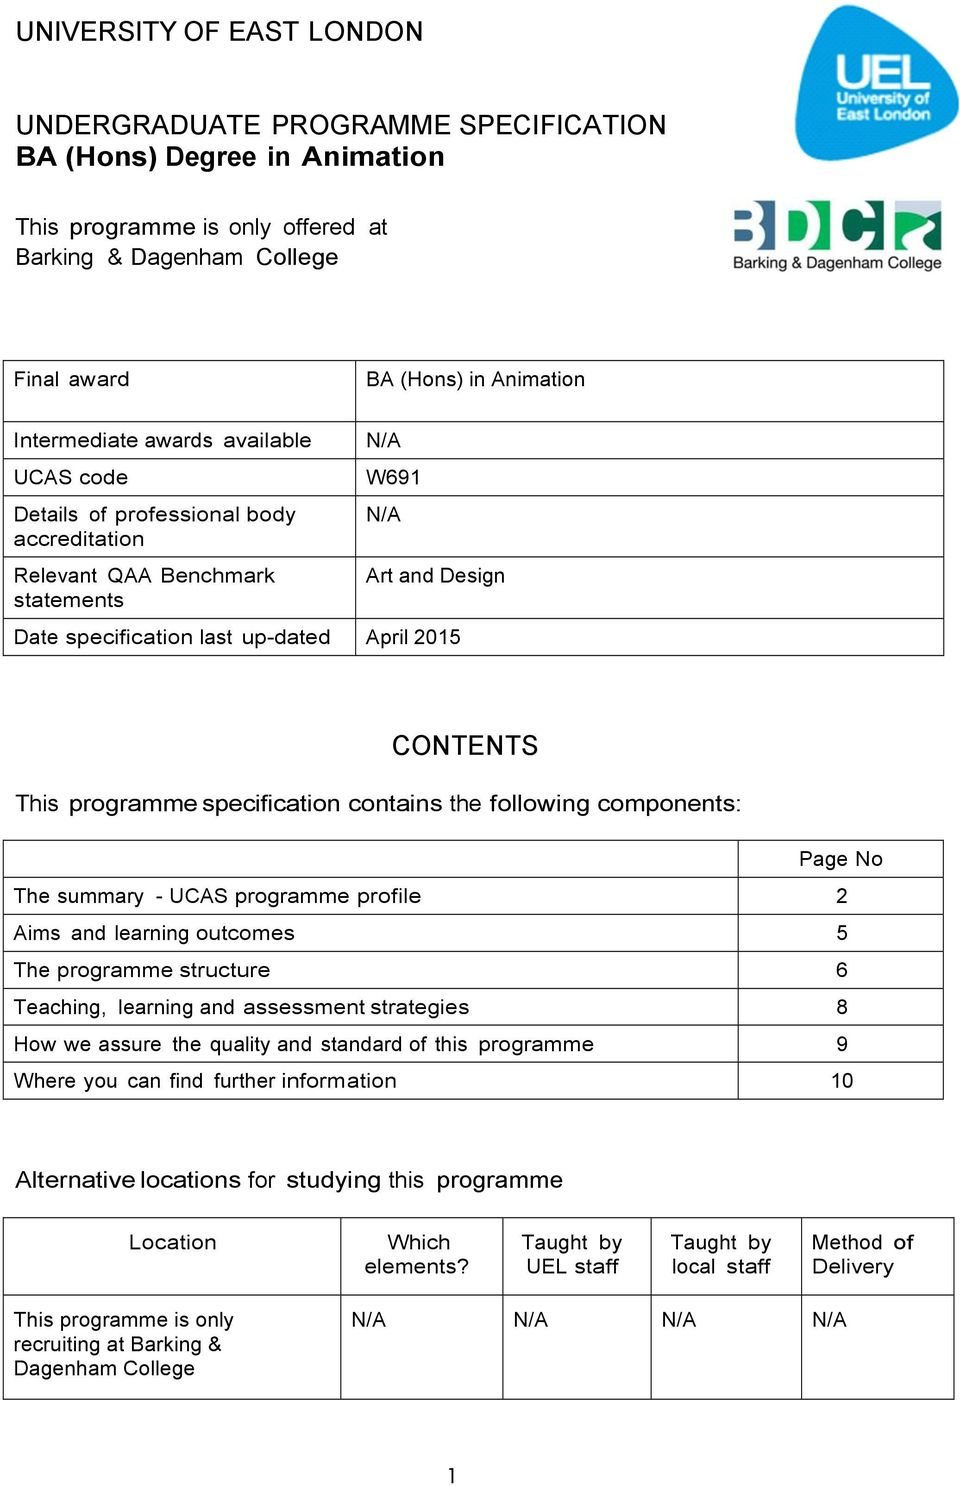 This programme specification contains the following components: Page No The summary - UCAS programme profile 2 Aims and learning outcomes 5 The programme structure 6 Teaching, learning and assessment